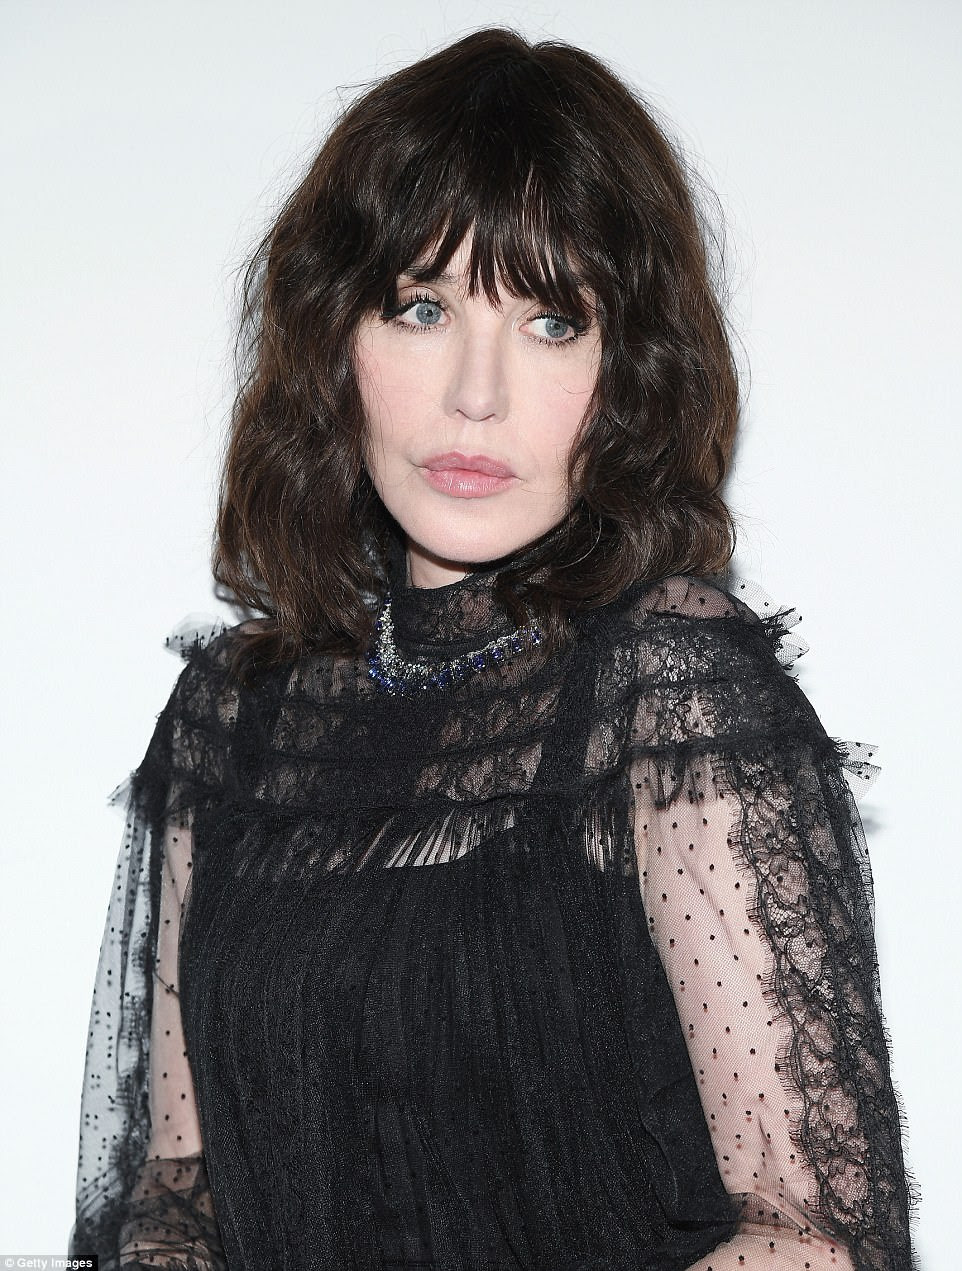 Sheer pleasure! Isabelle Adjani exuded sophistication in her chic blouse which featured lace embellished sheer sleeves